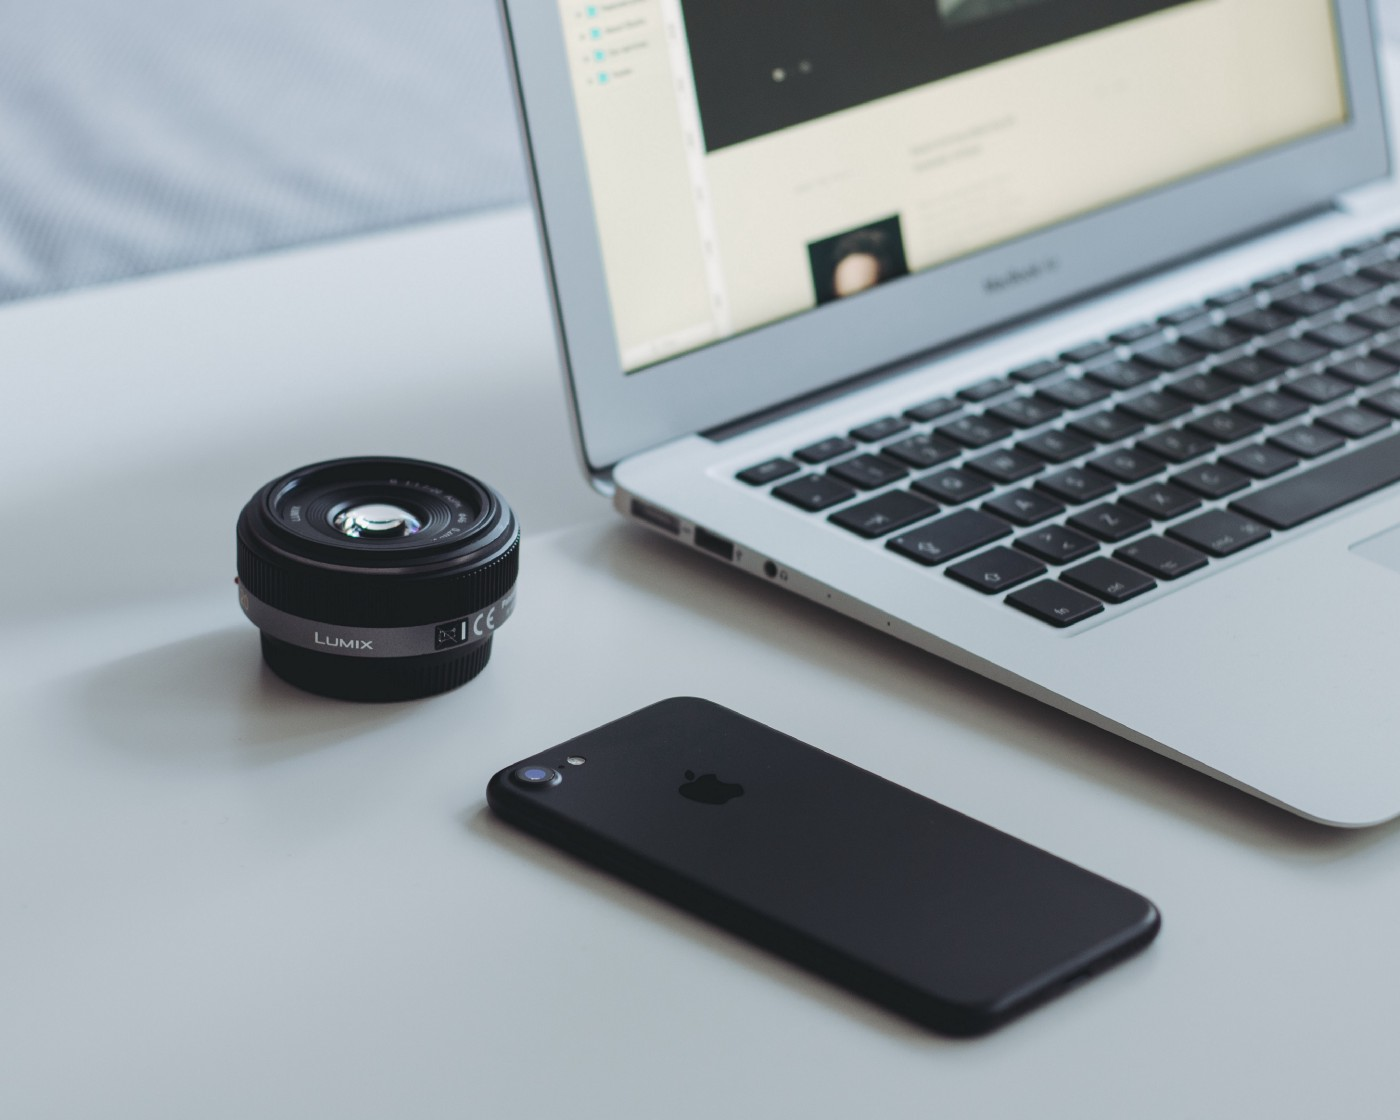 Computer, camera lens and cellphone, illustrating the routine of a freelance photographer.